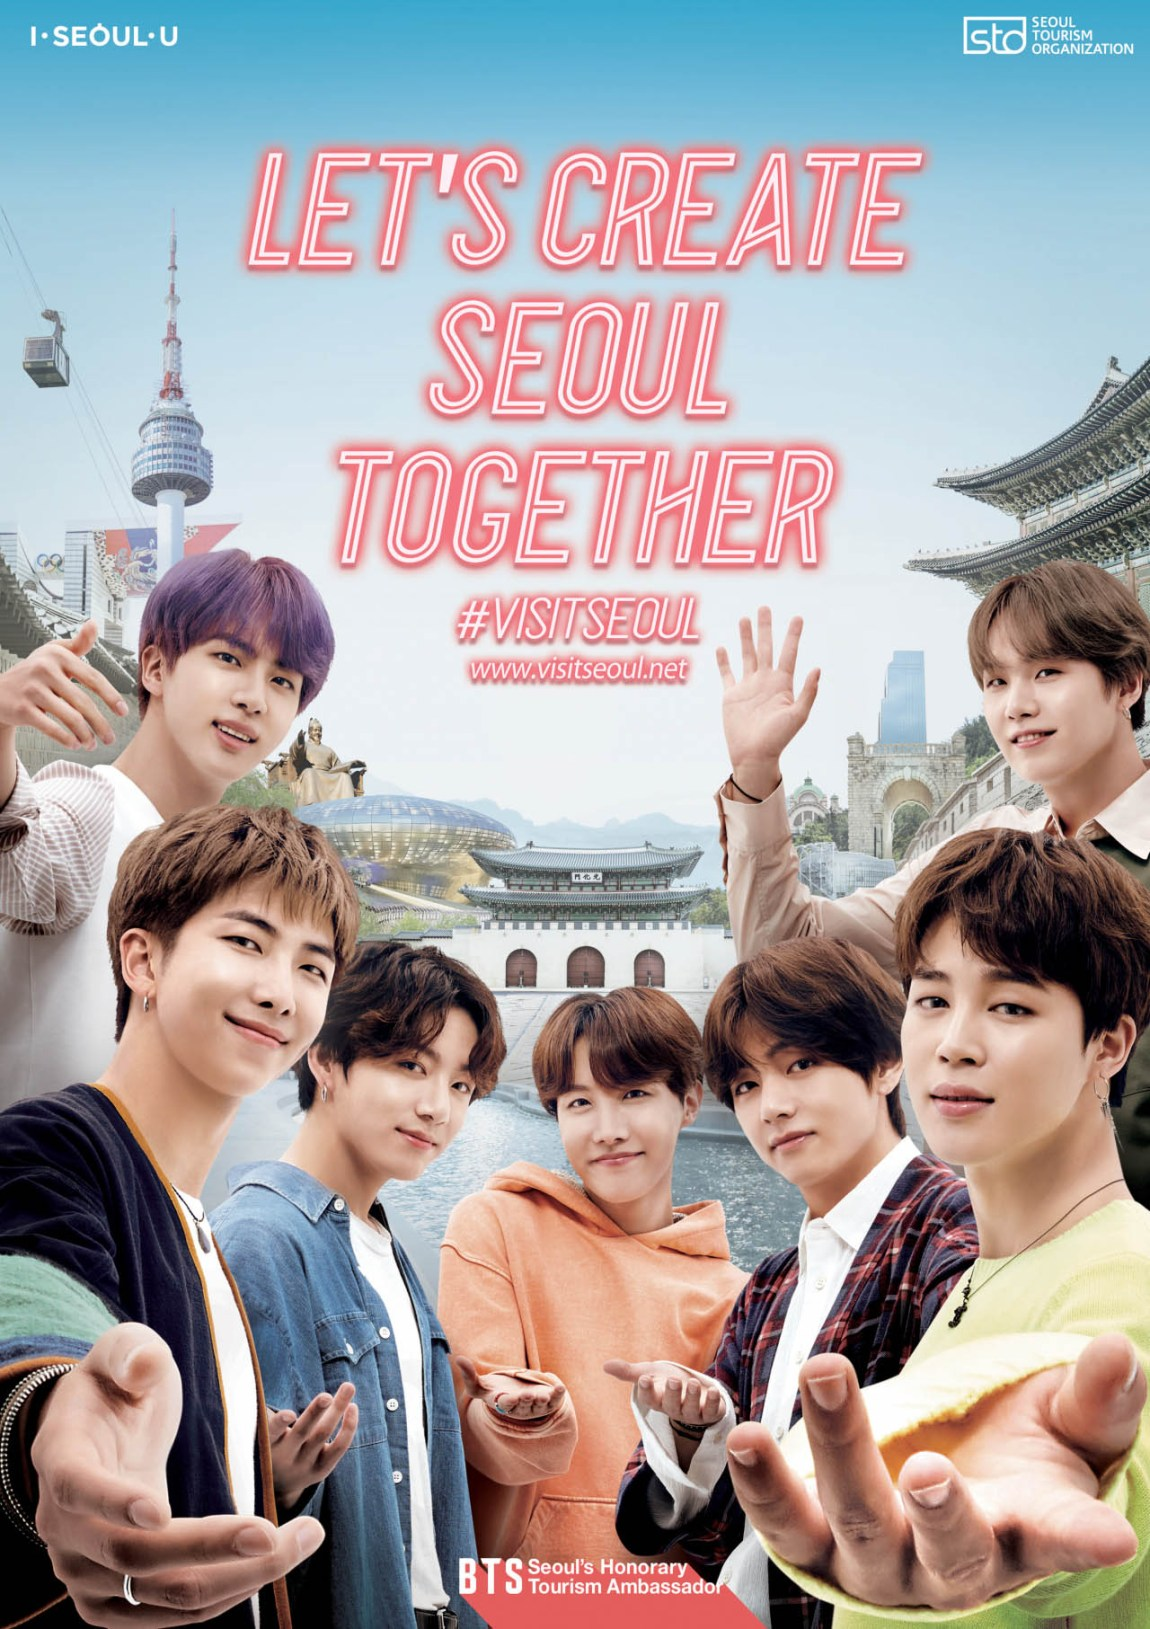 """Let's Create Seoul Together"" BTS will Promote Seoul with Seoul Tourism Organization"